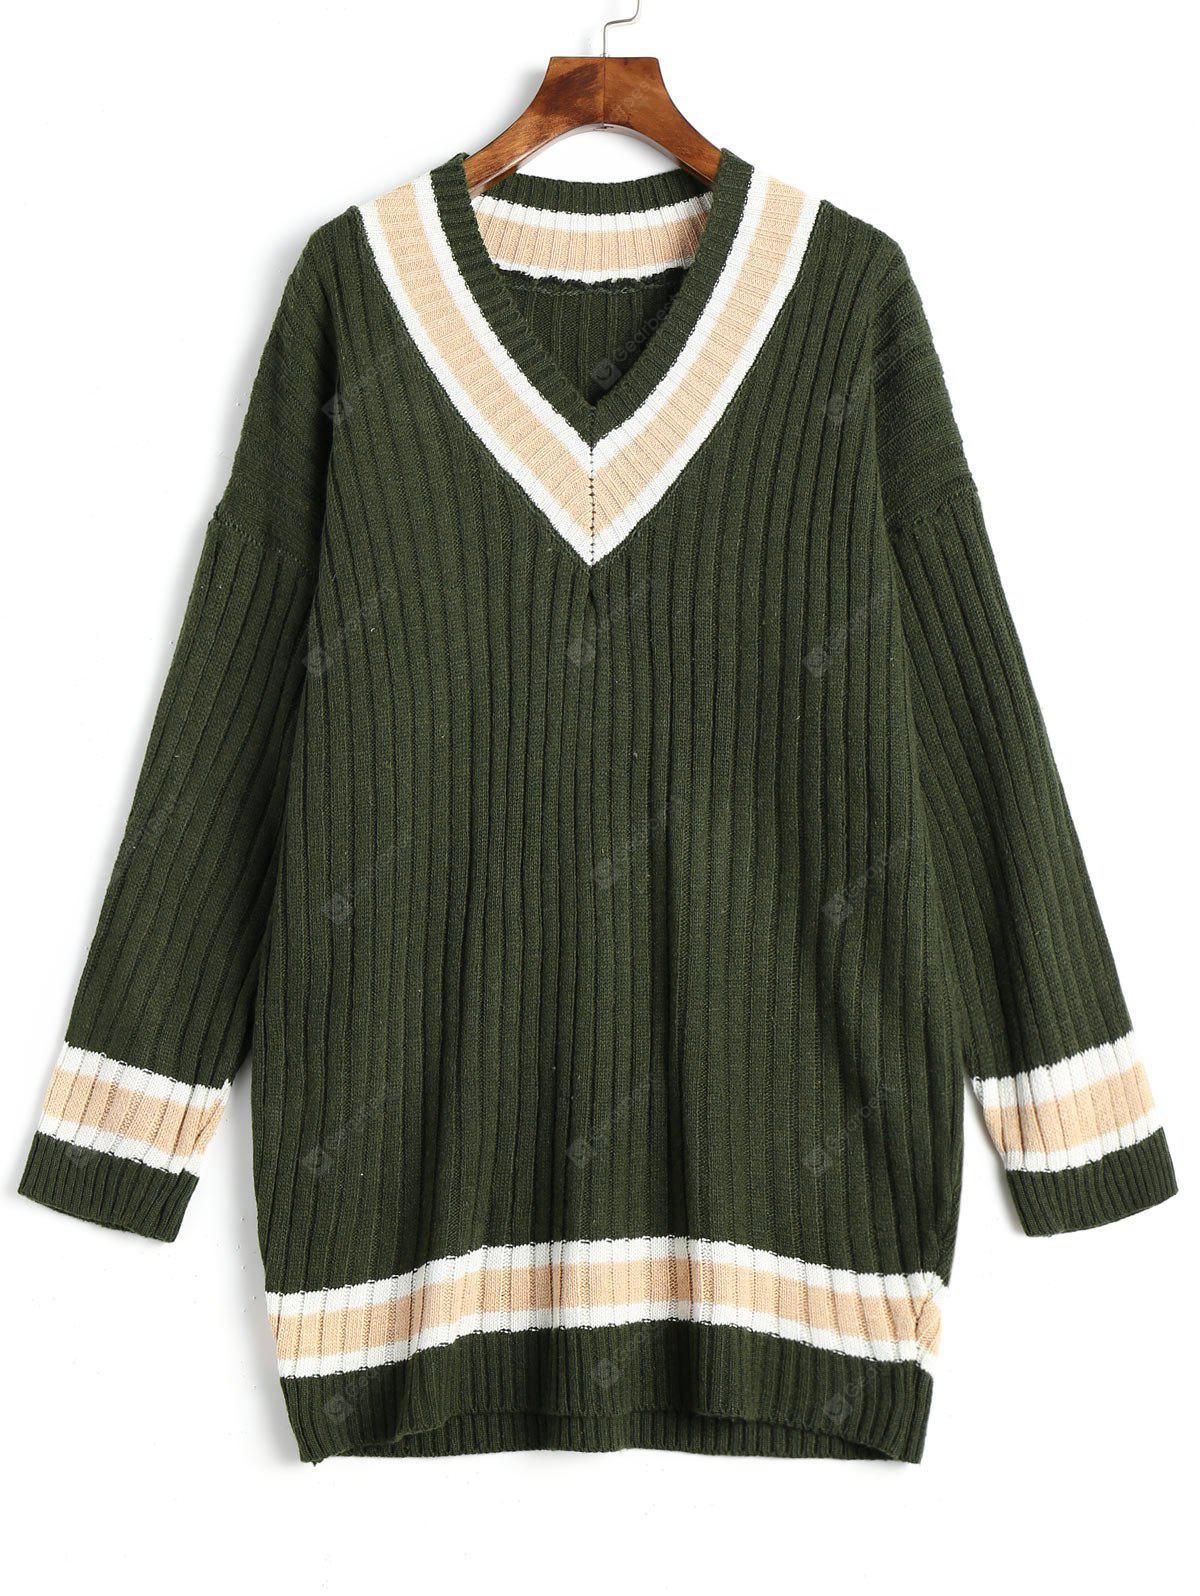 Contrast Trimmed V Neck Rib Tunic Sweater